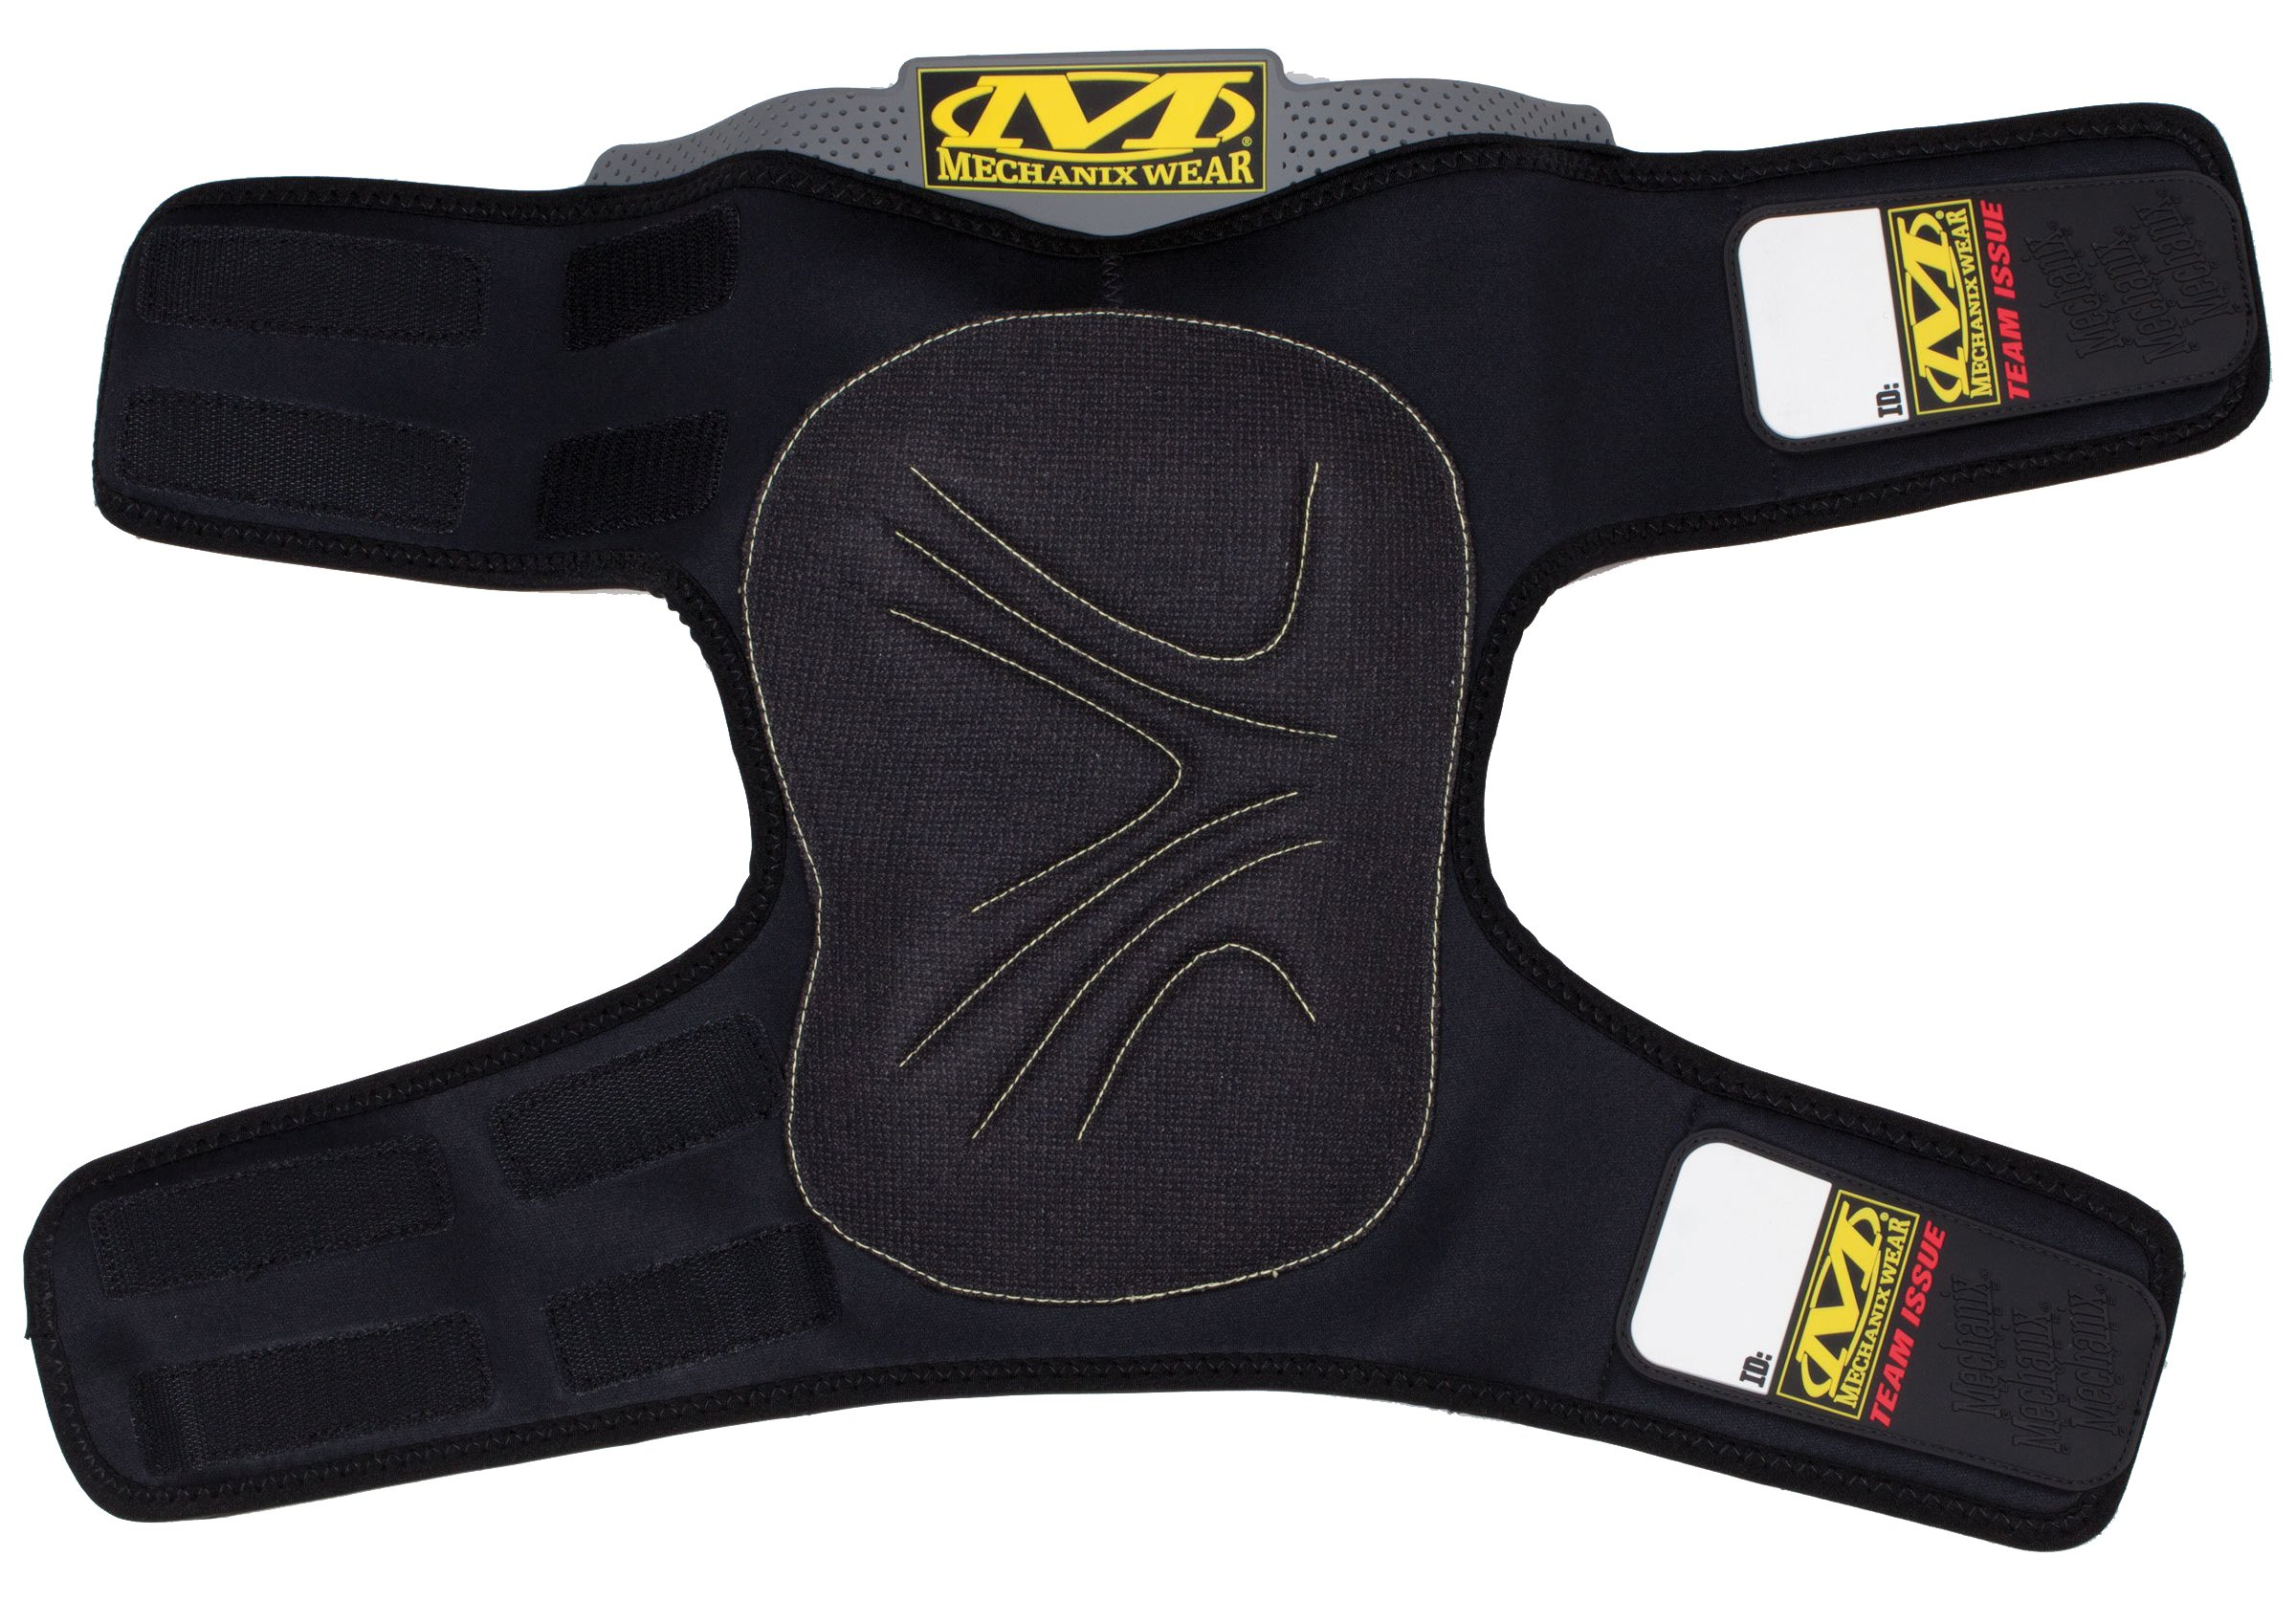 Mechanix Wear - Team Issue Knee Pads (One Size, Black) by Mechanix Wear